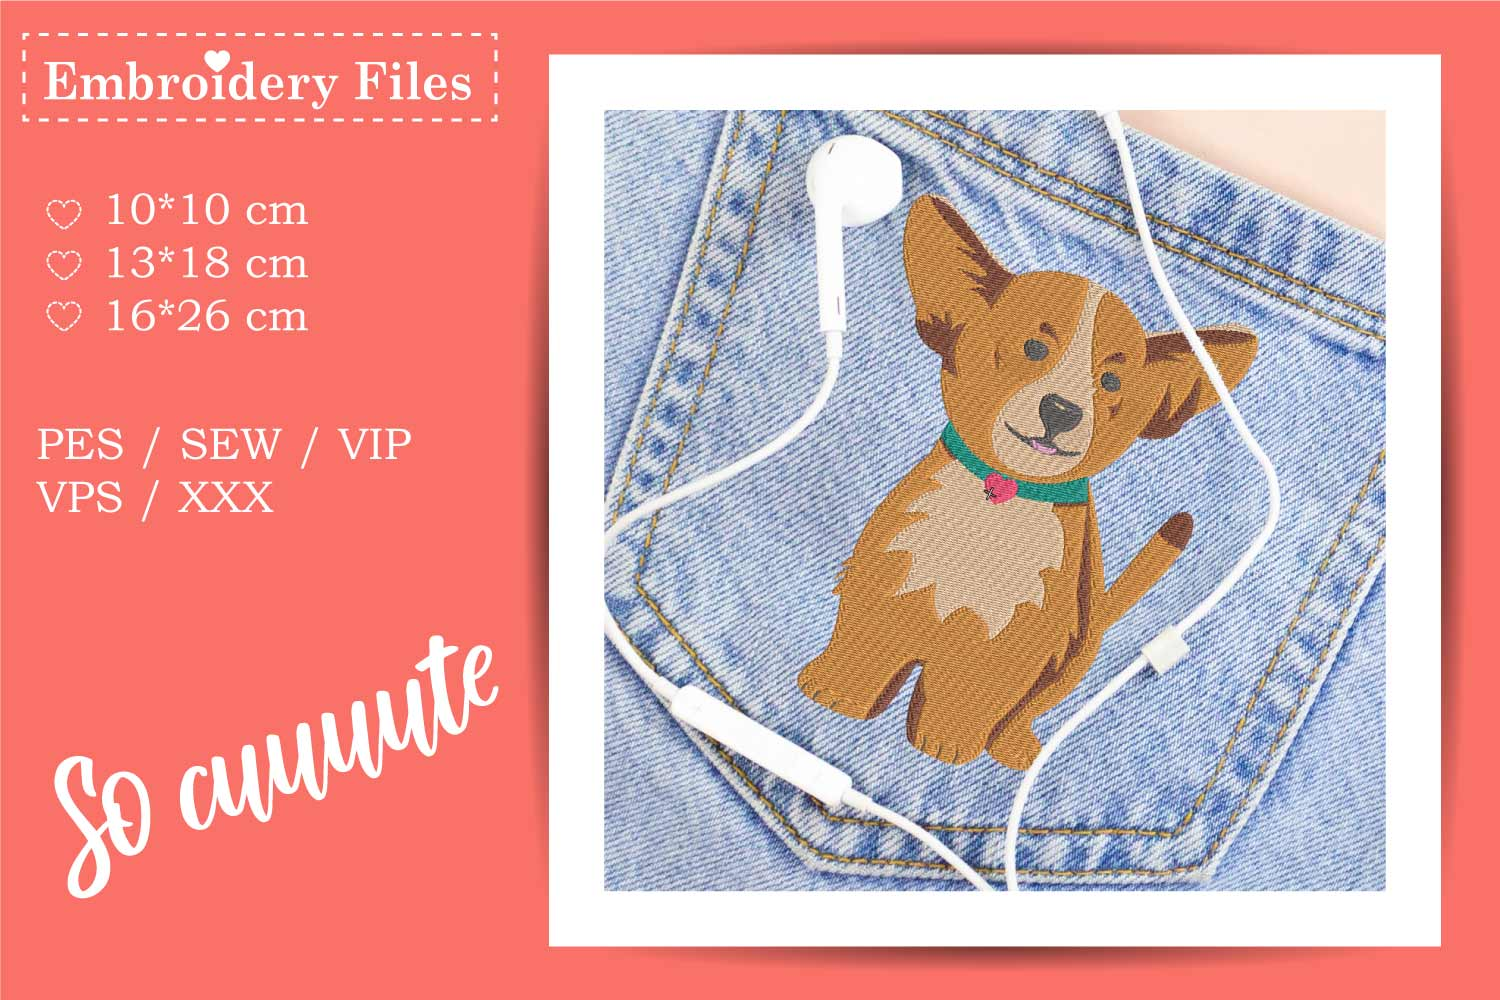 Dogs - Mini Bundle - Embroidery Files for Beginners example image 9